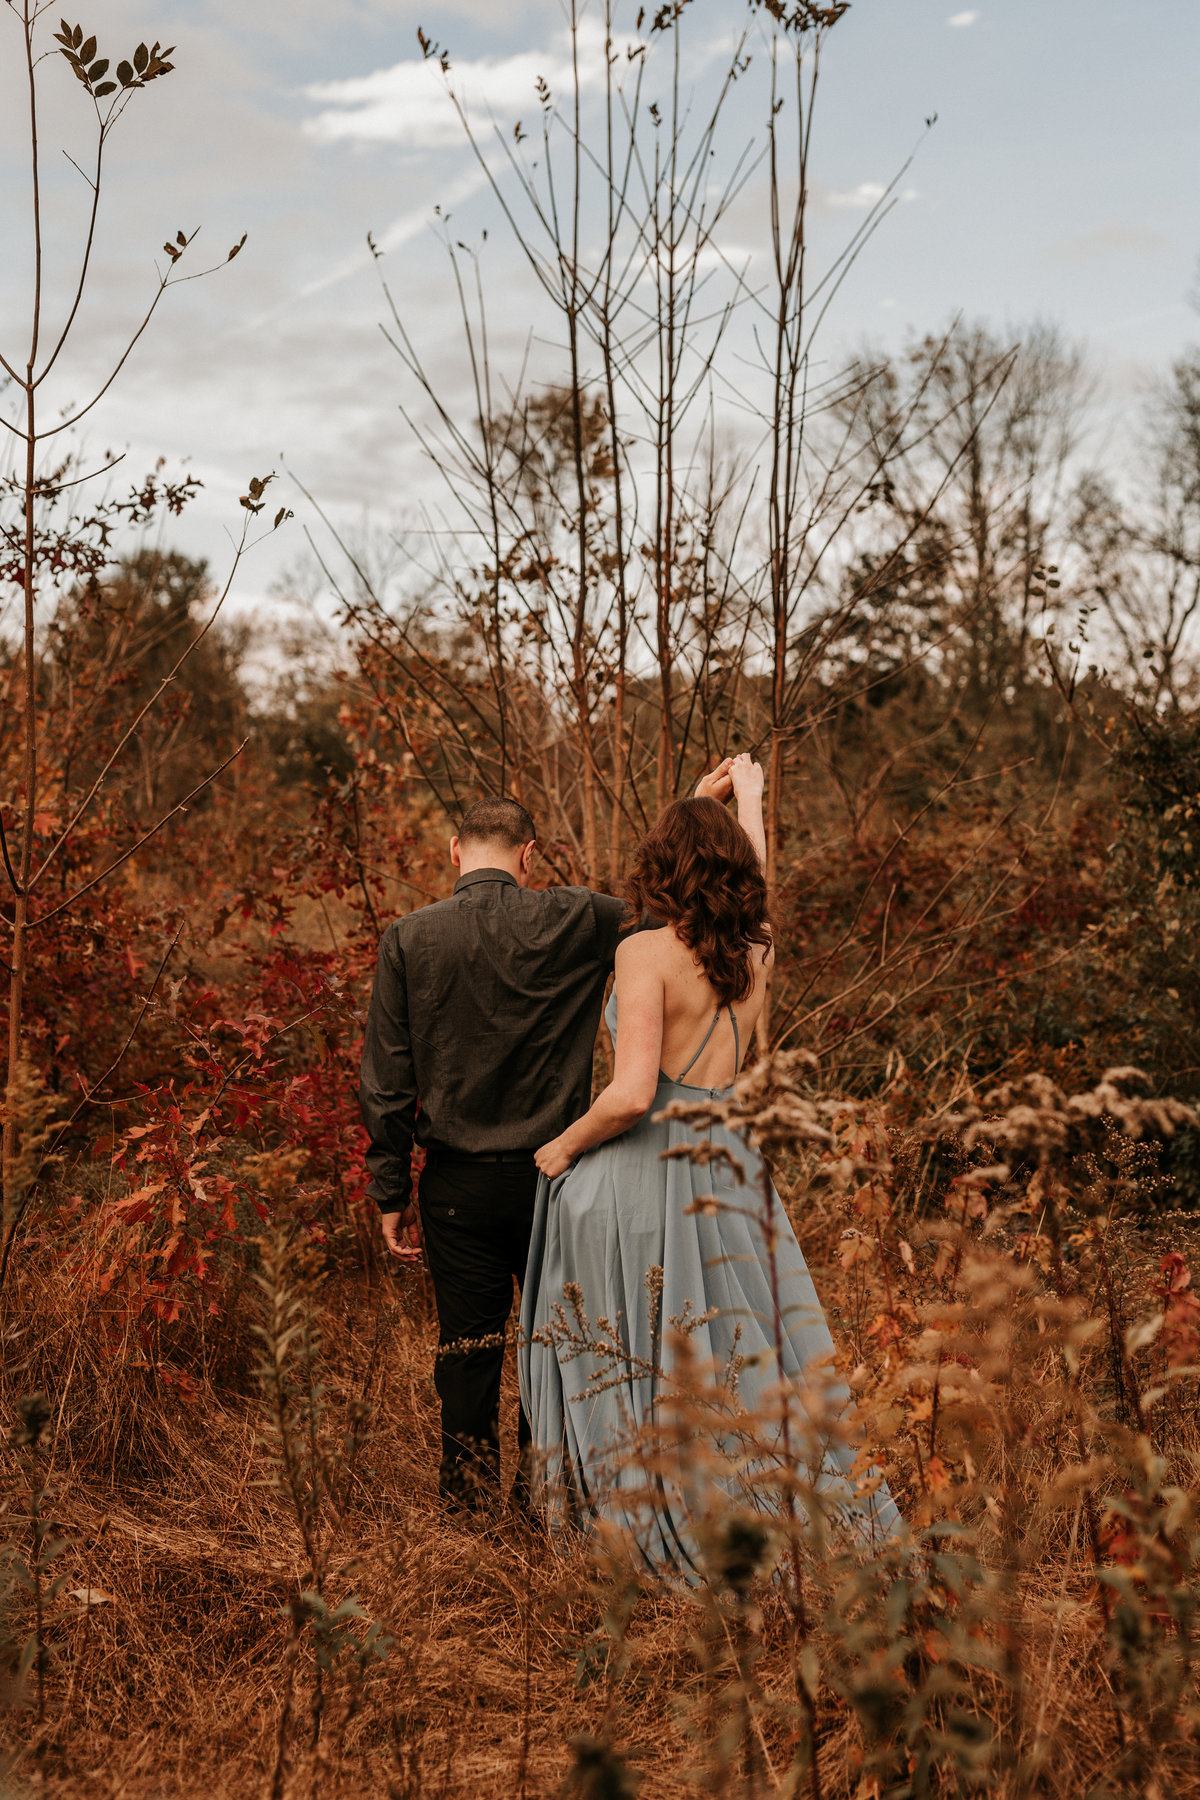 Ashley_Eddie_Engagement_Session_Sneak_Peeks_10.26.18-6